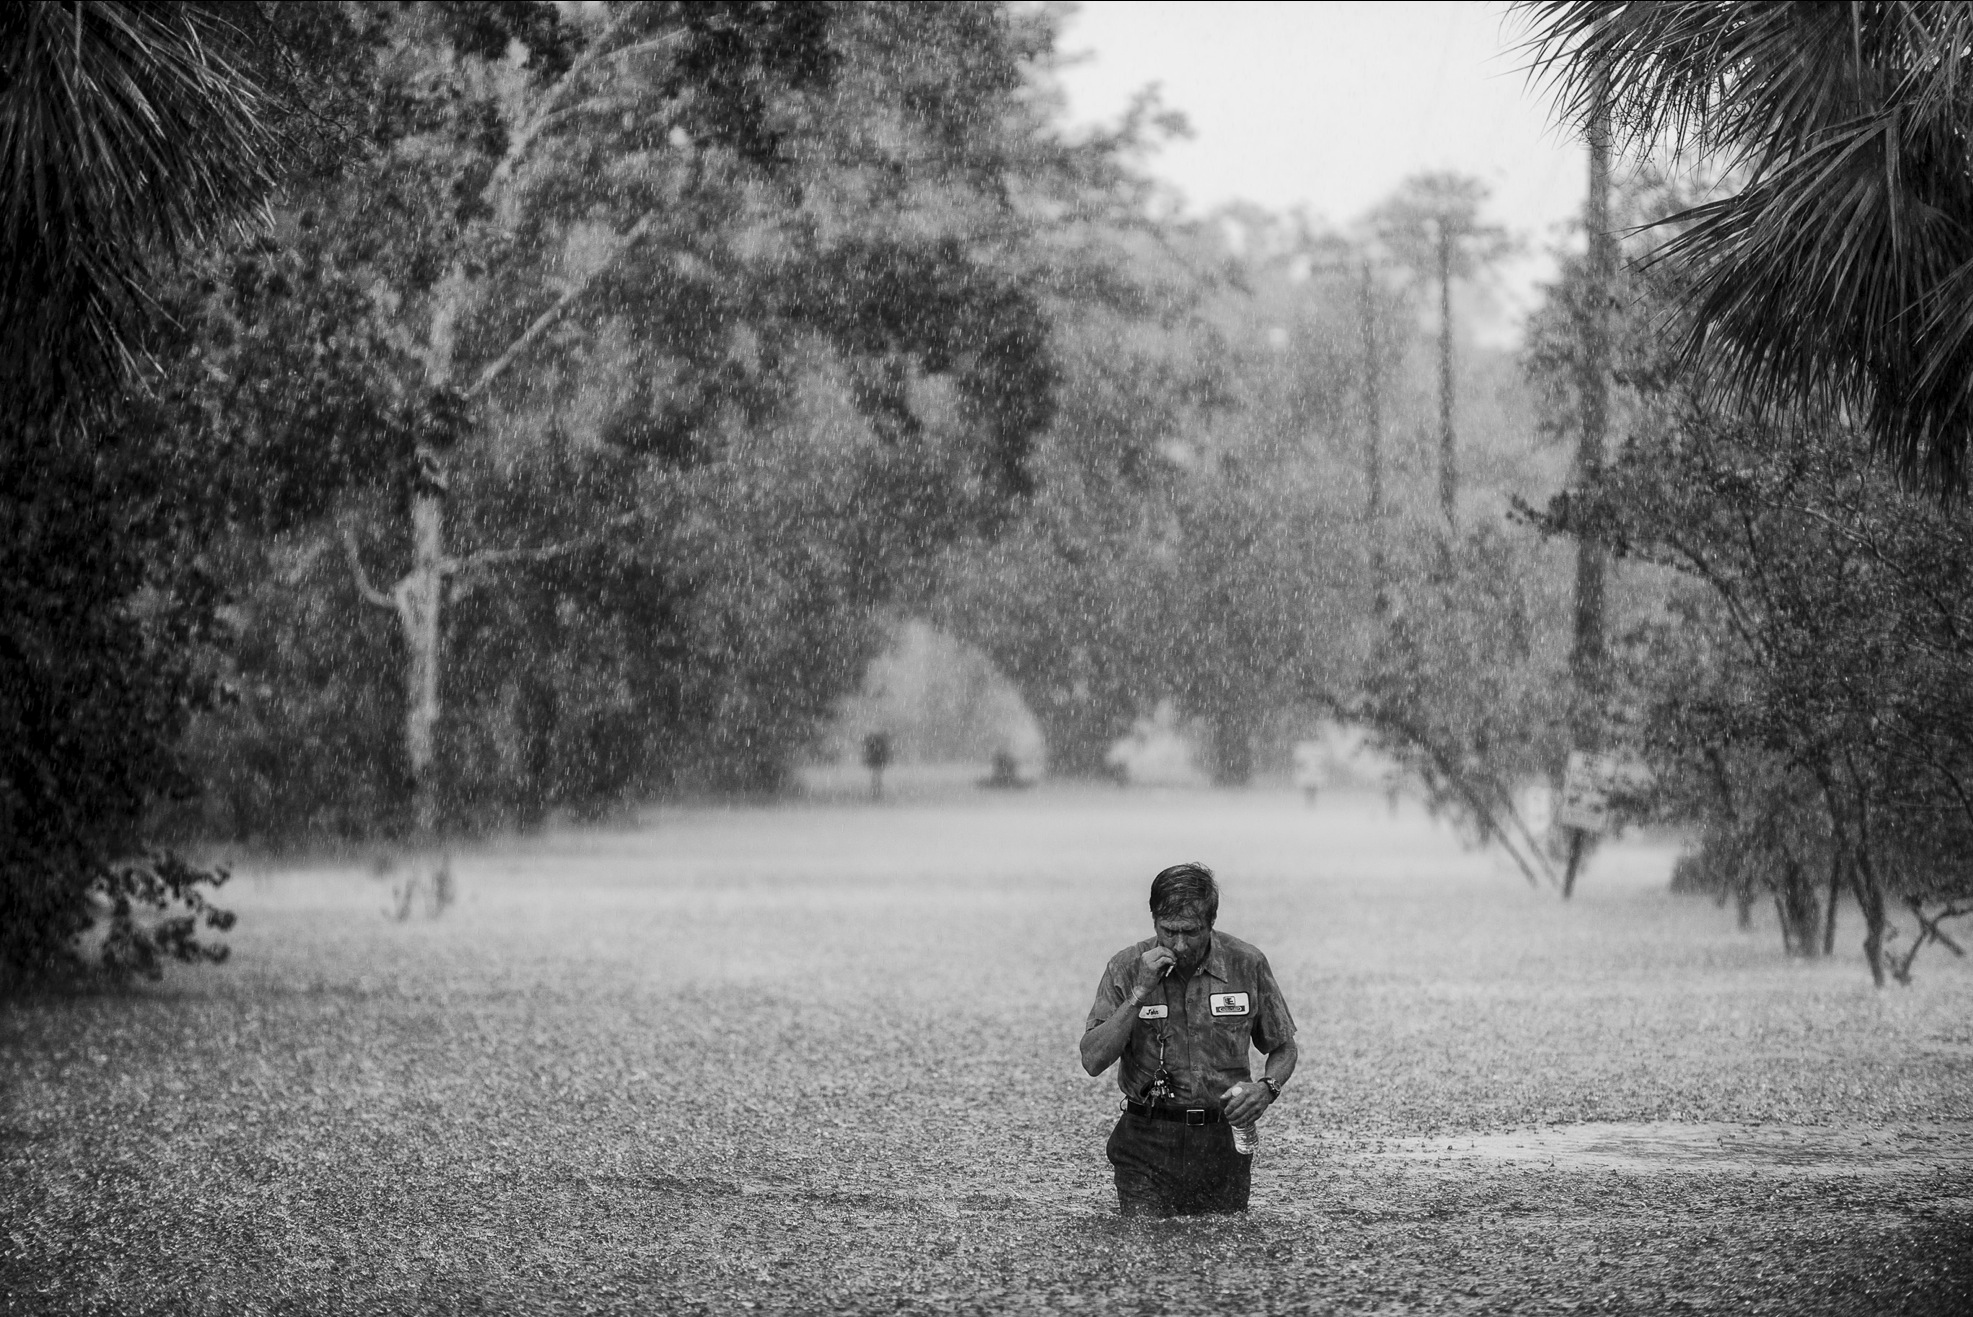 A resident crosses a flooded street in Slidell, La., on August 30, 2012, after Hurricane Isaac touched down in Louisiana.